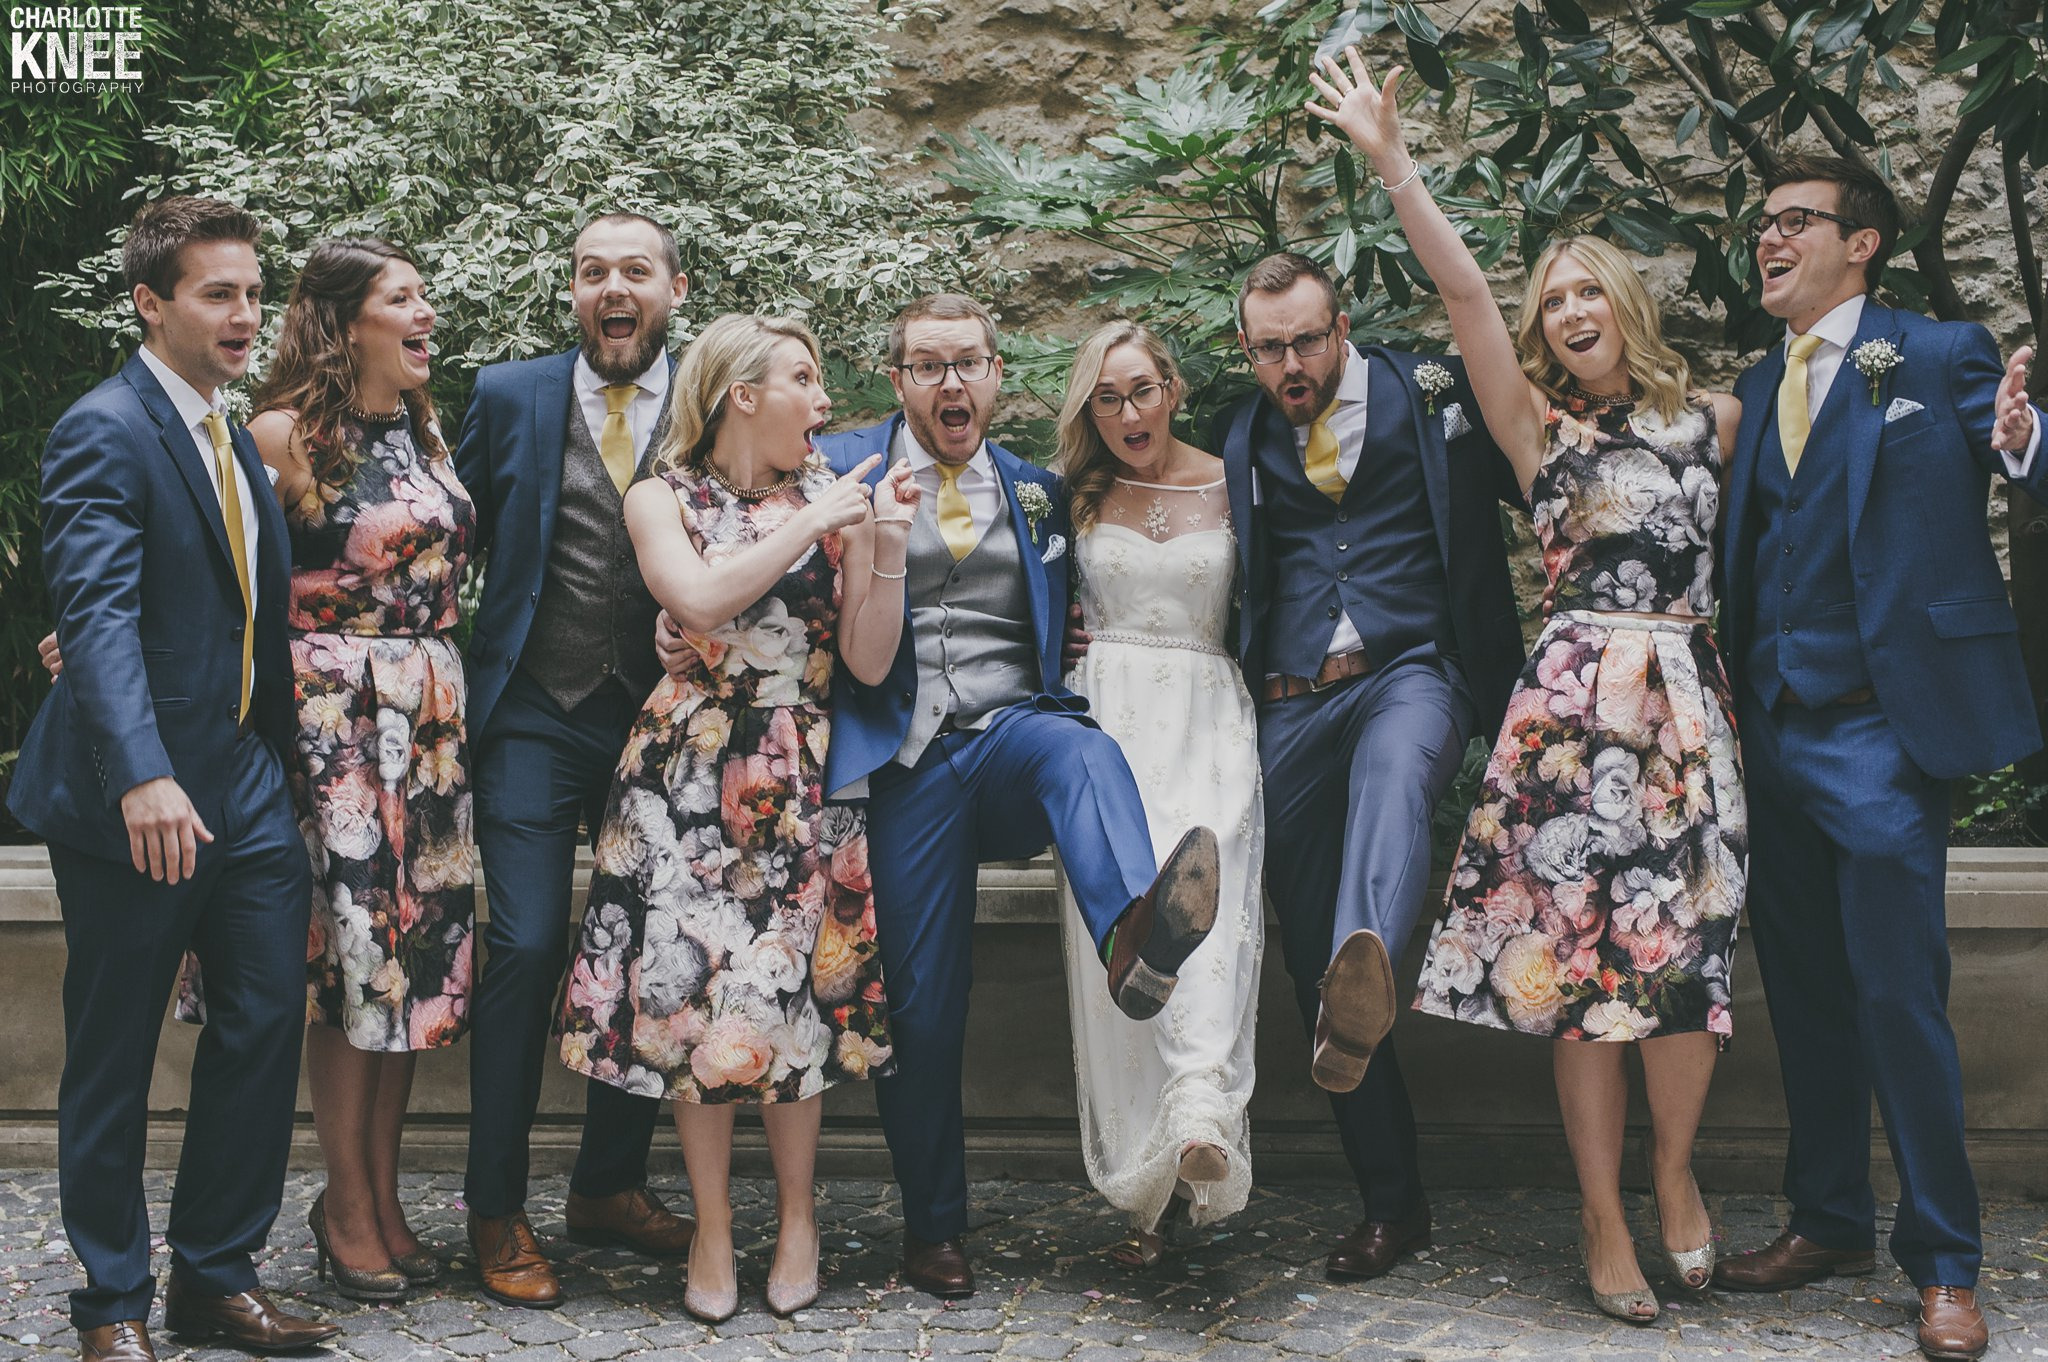 Saddlers Hall London Wedding Photography Copyright Charlotte Knee Photography_0144.jpg